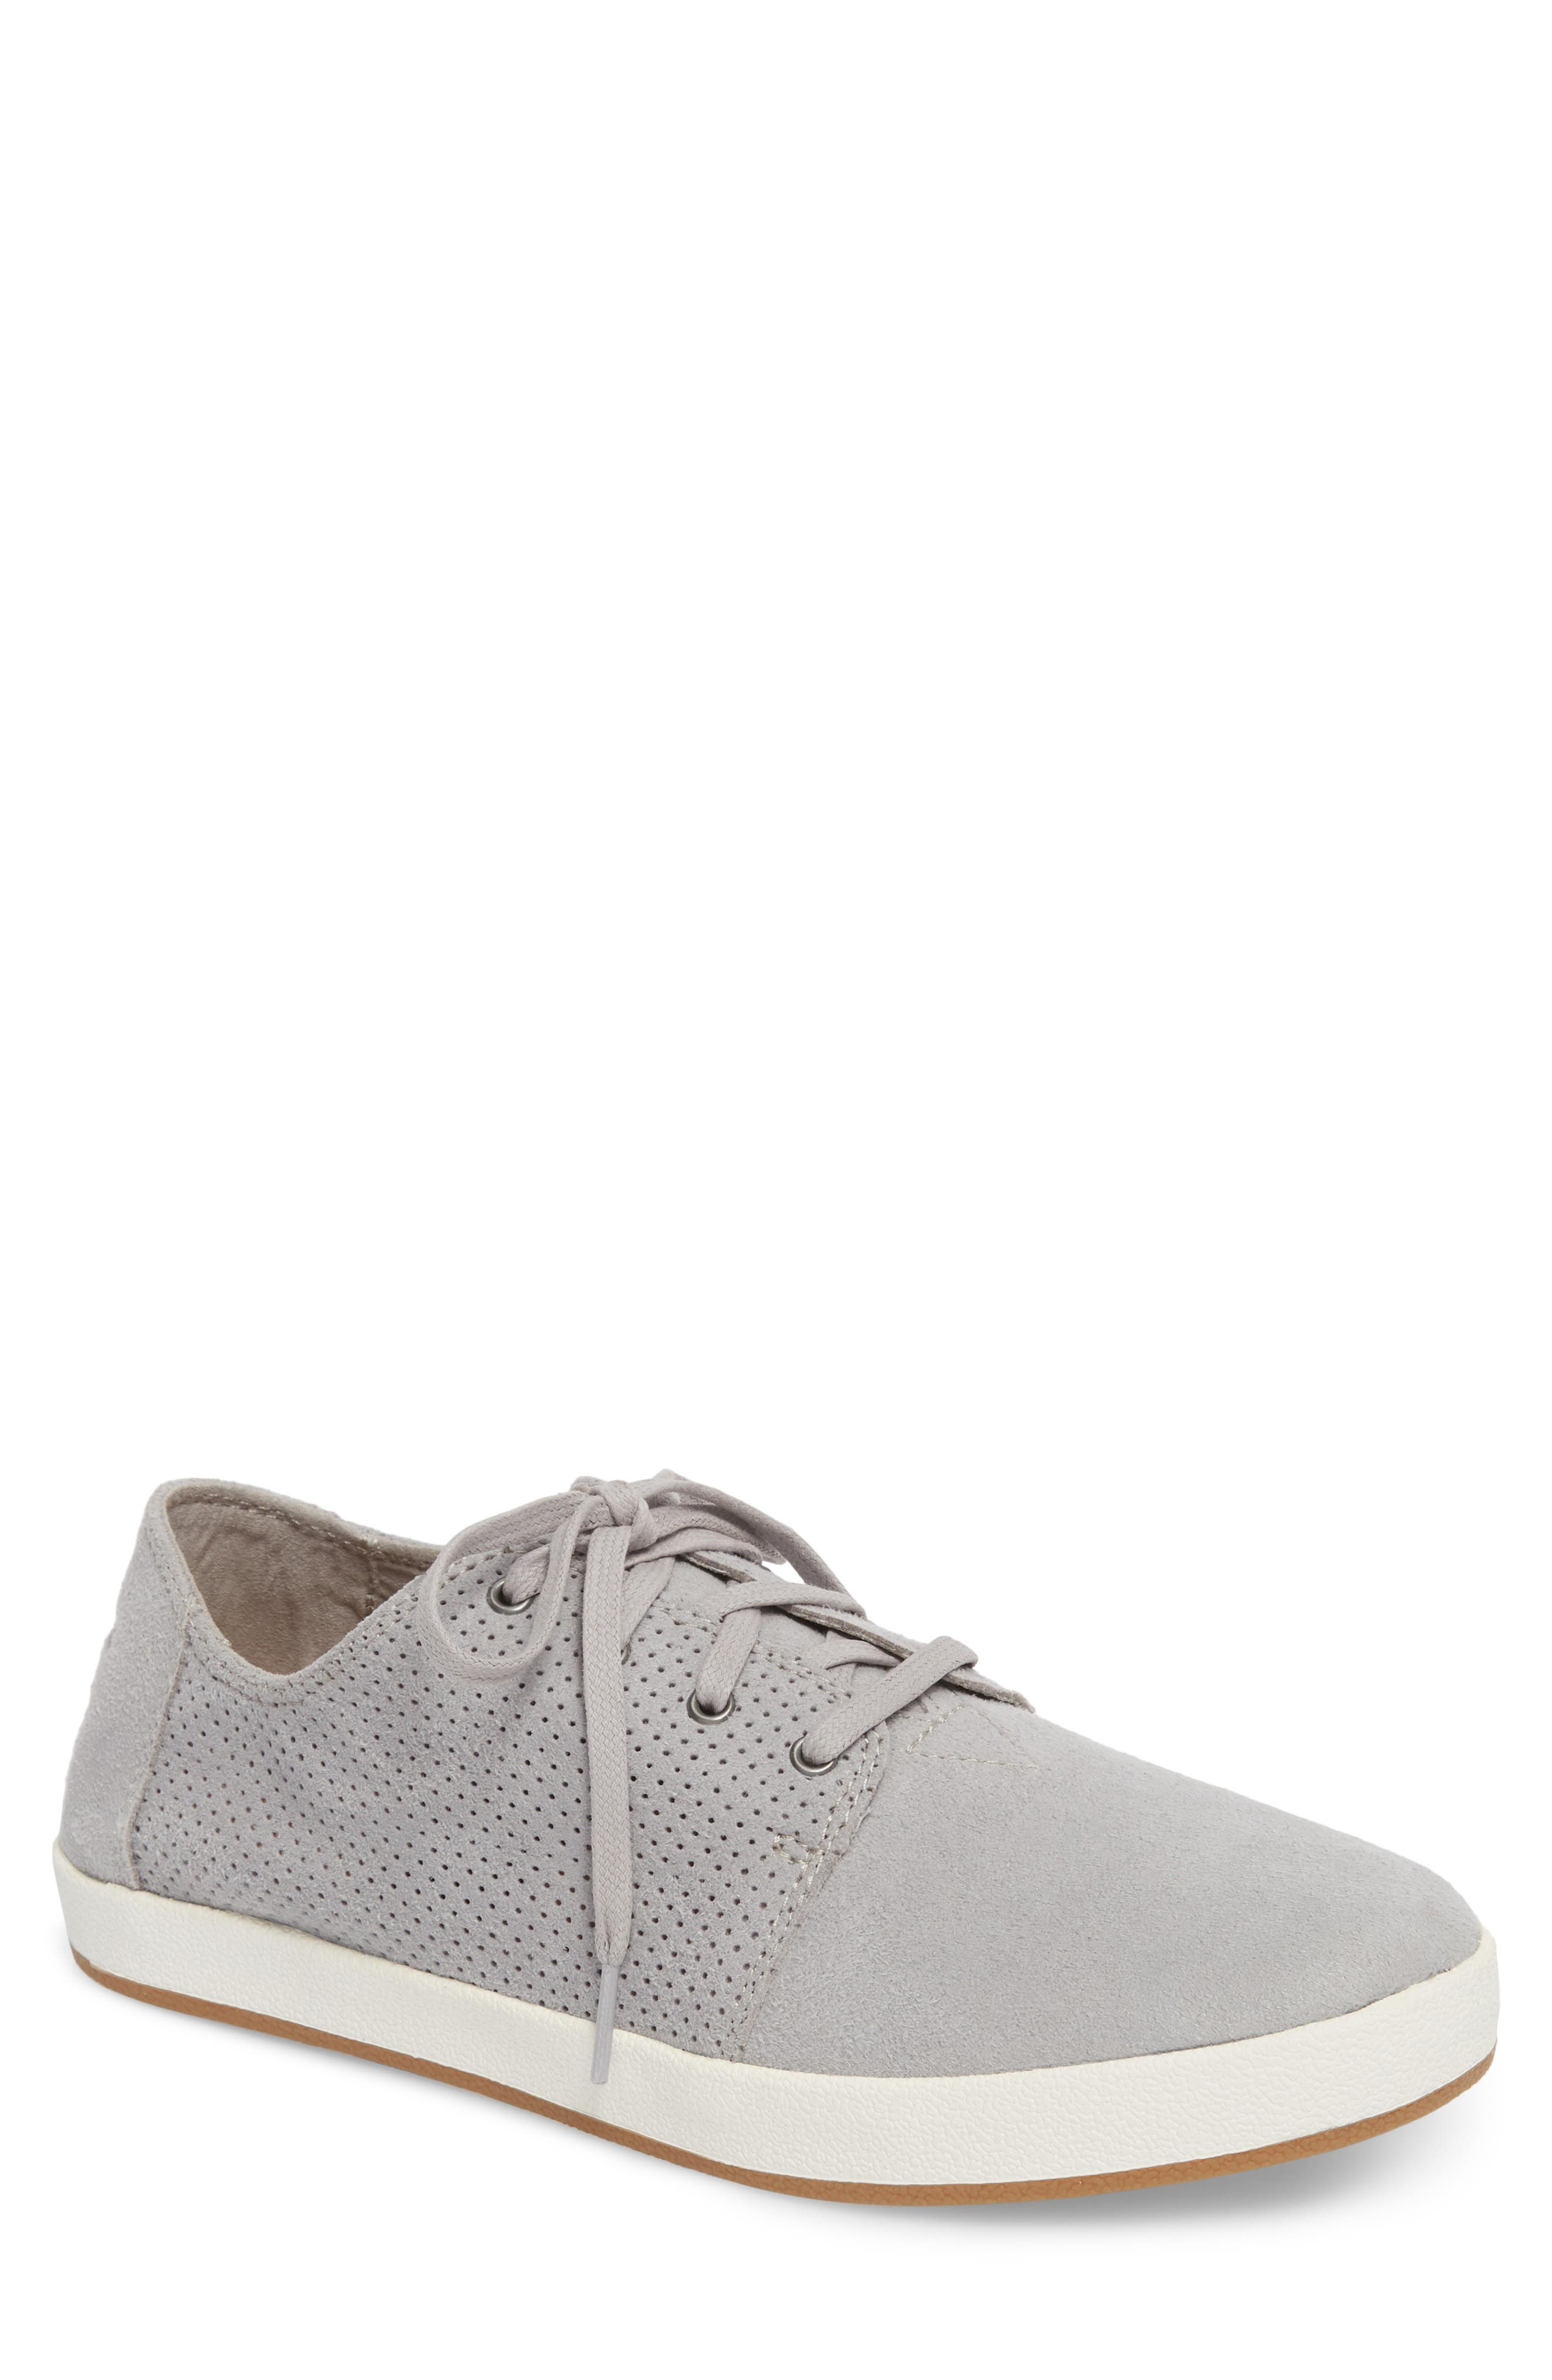 Payton Perforated Sneaker,                         Main,                         color, DRIZZLE GREY PERFORATED